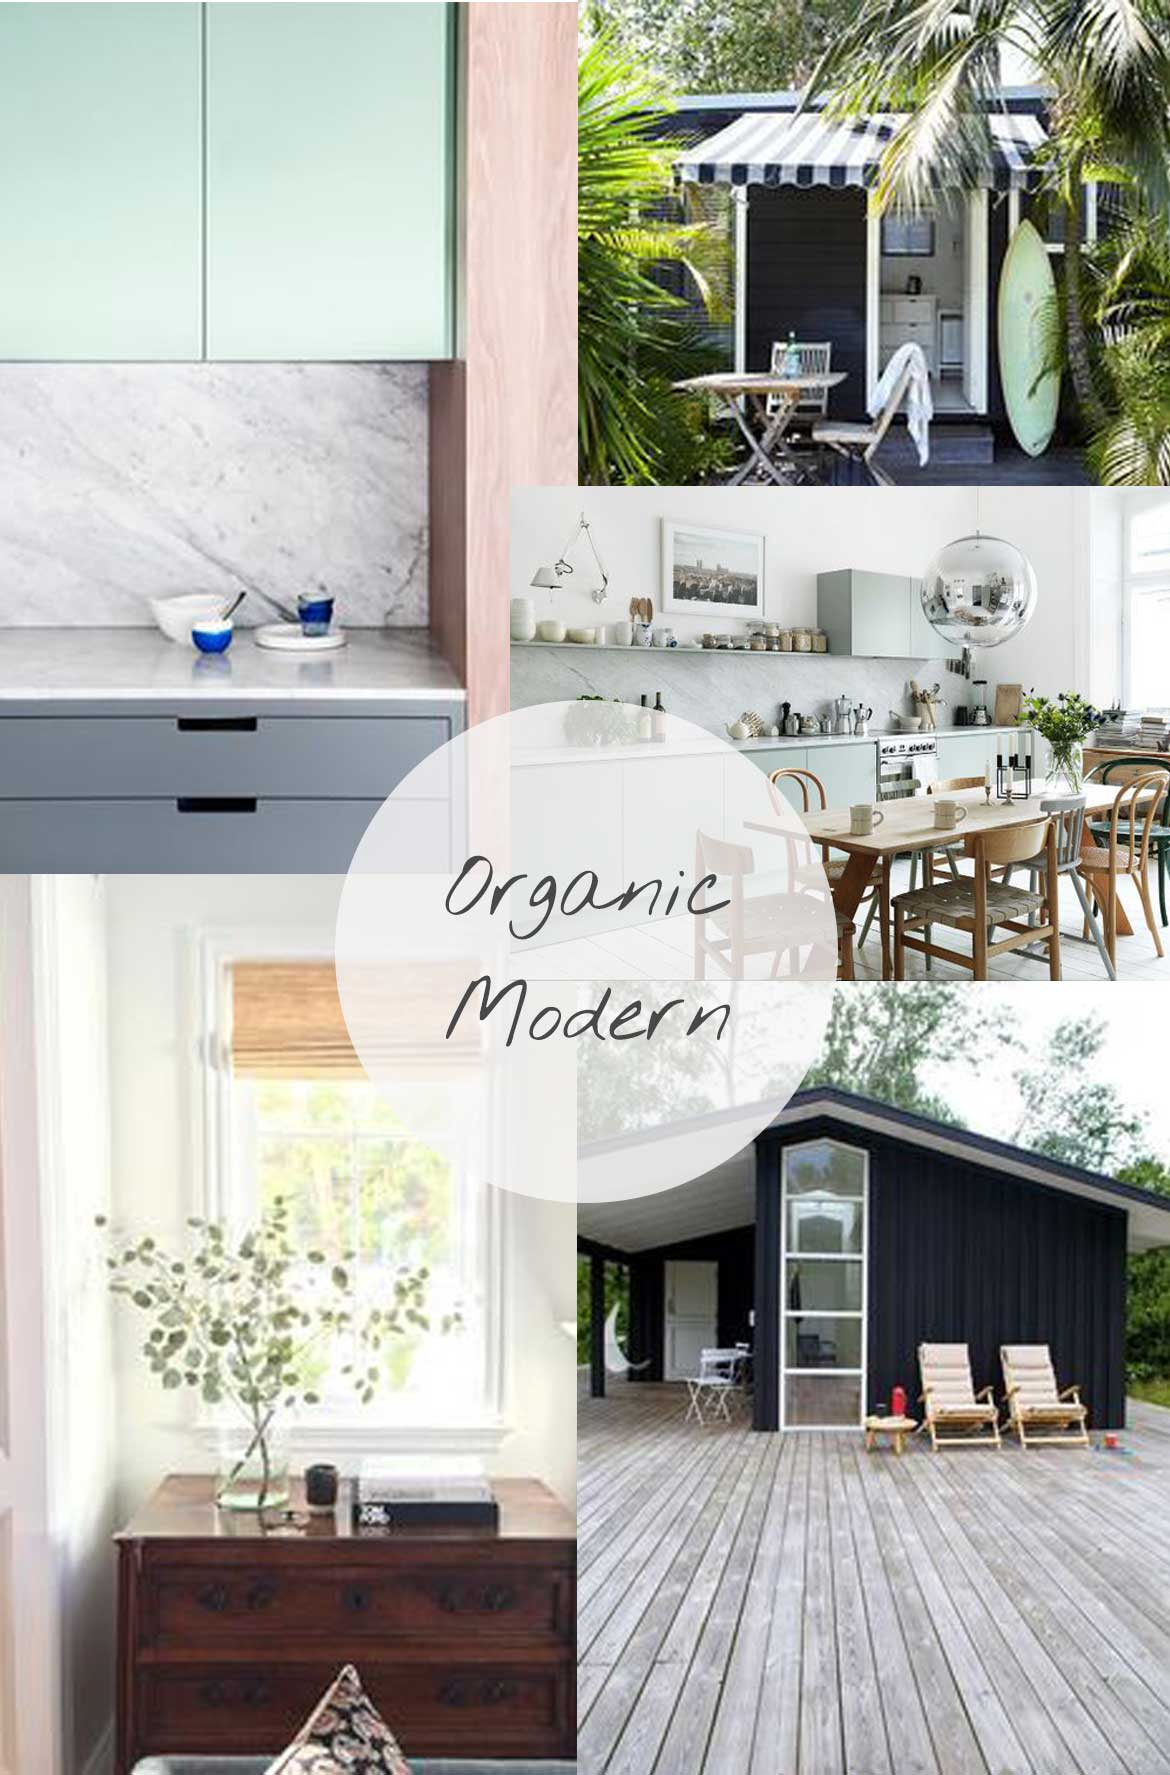 Organic Modern Decor   Mixing natural elements like wood, marble and greenery on a background on clean white. For me, organic modern also means adding warmth and patina with the use of vintage wooden furniture.